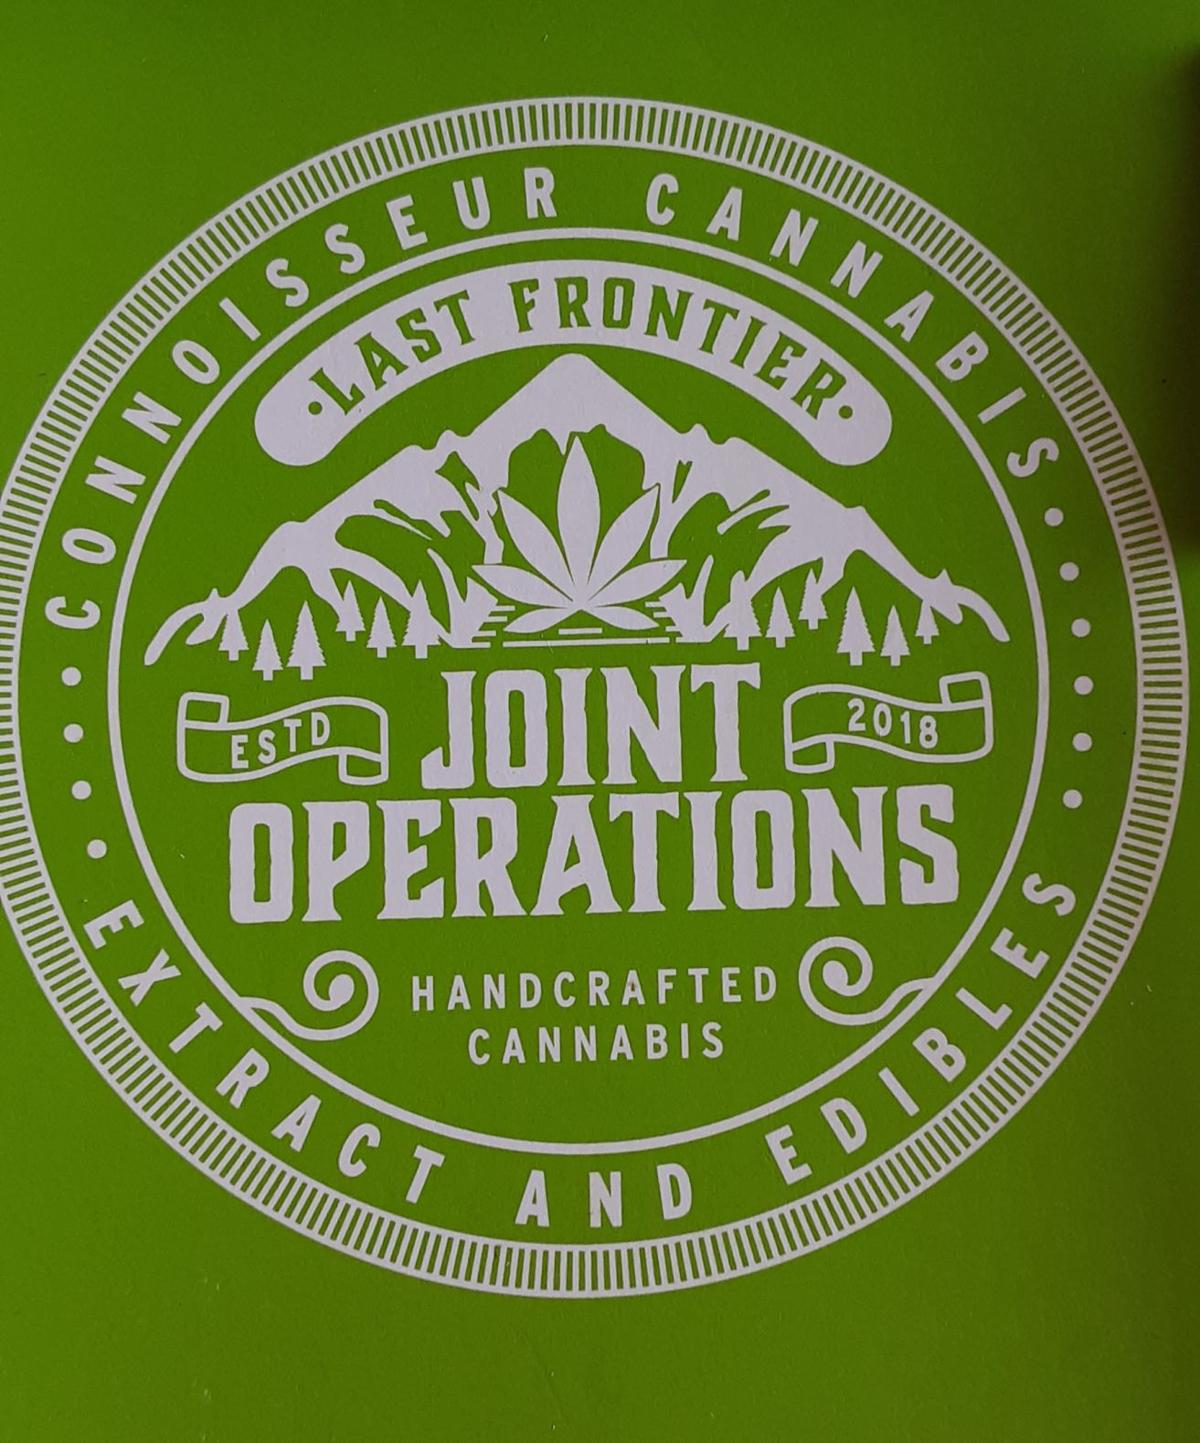 Last Frontier Joint Operations